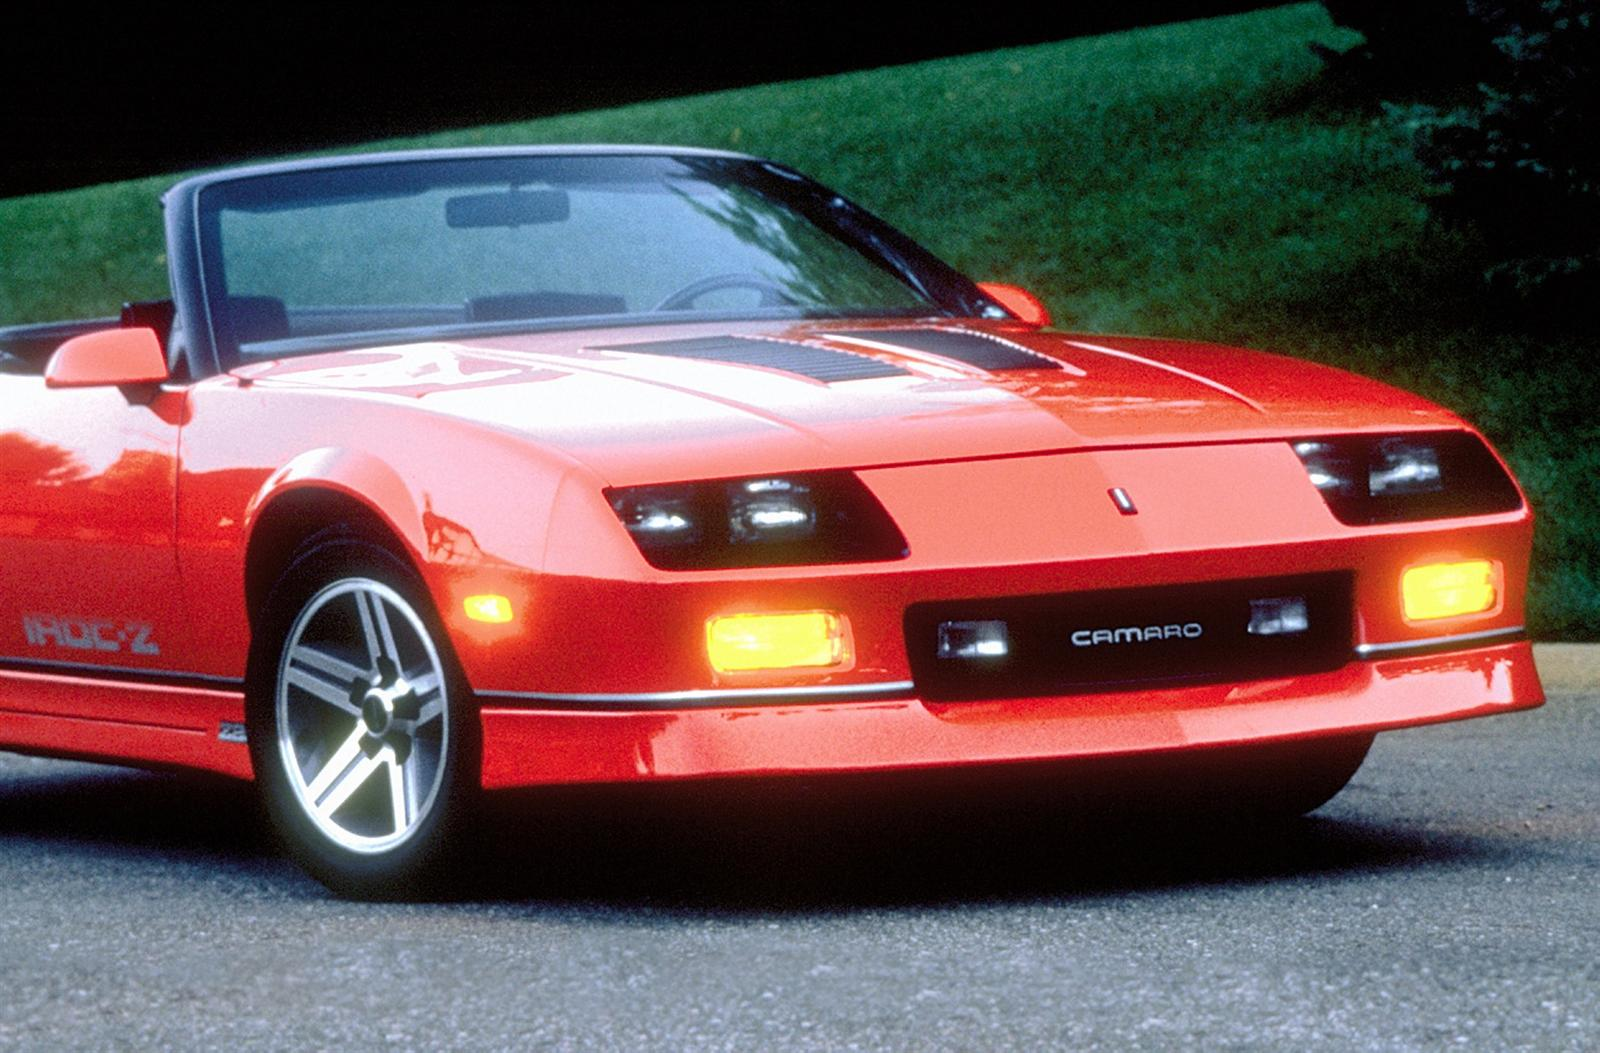 1990 Chevrolet Camaro Image. Photo 1 of 2